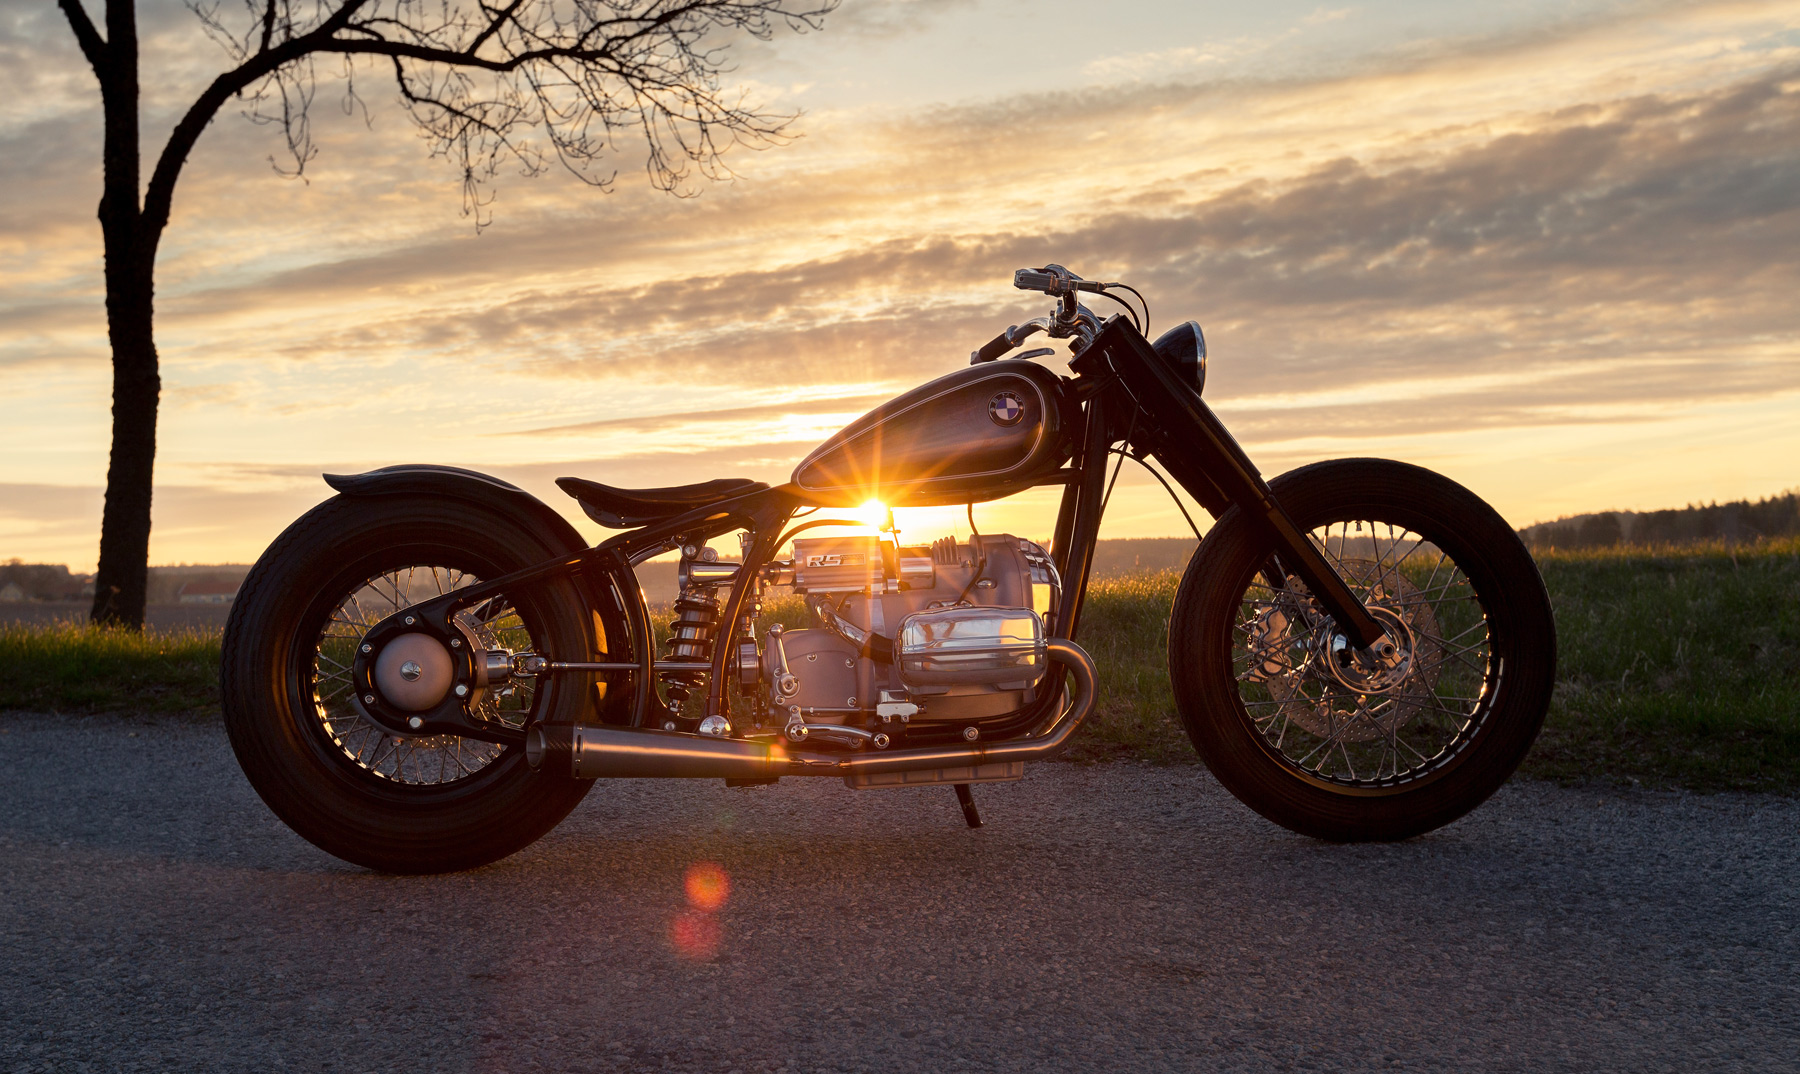 Custom Meets Heritage With The BMW Motorrad R 5 Hommage